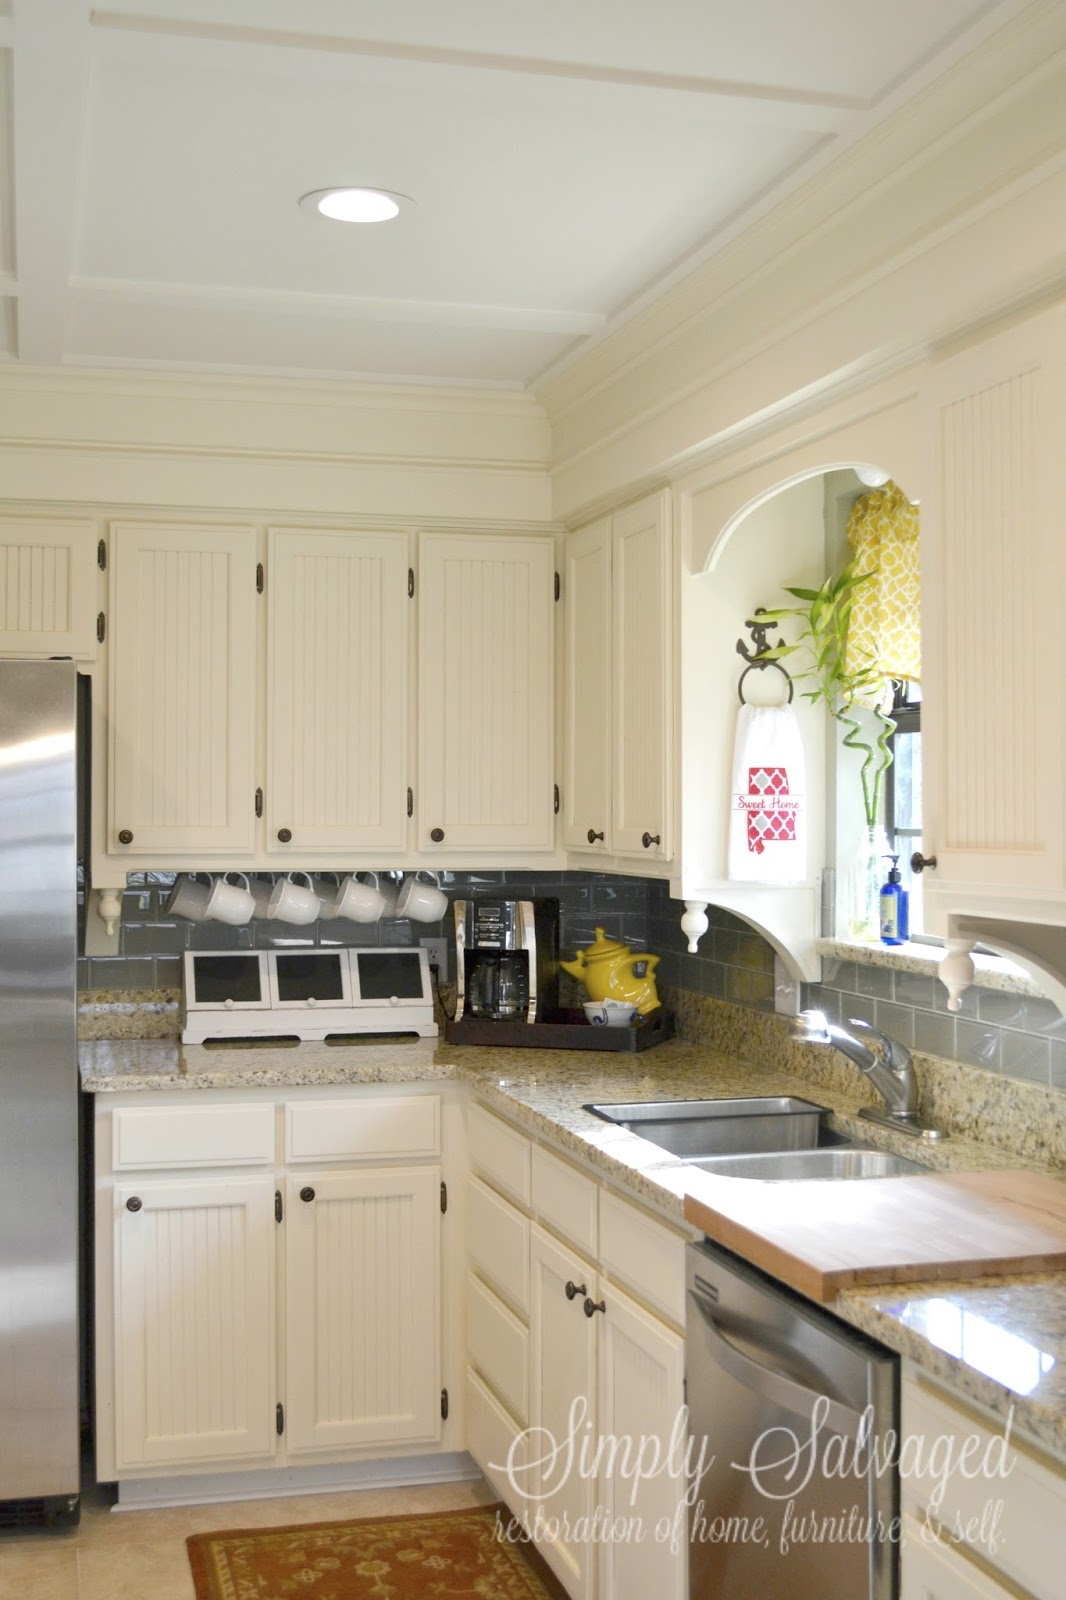 Simply Salvaged: How to Dress up Your Boring Cabinets